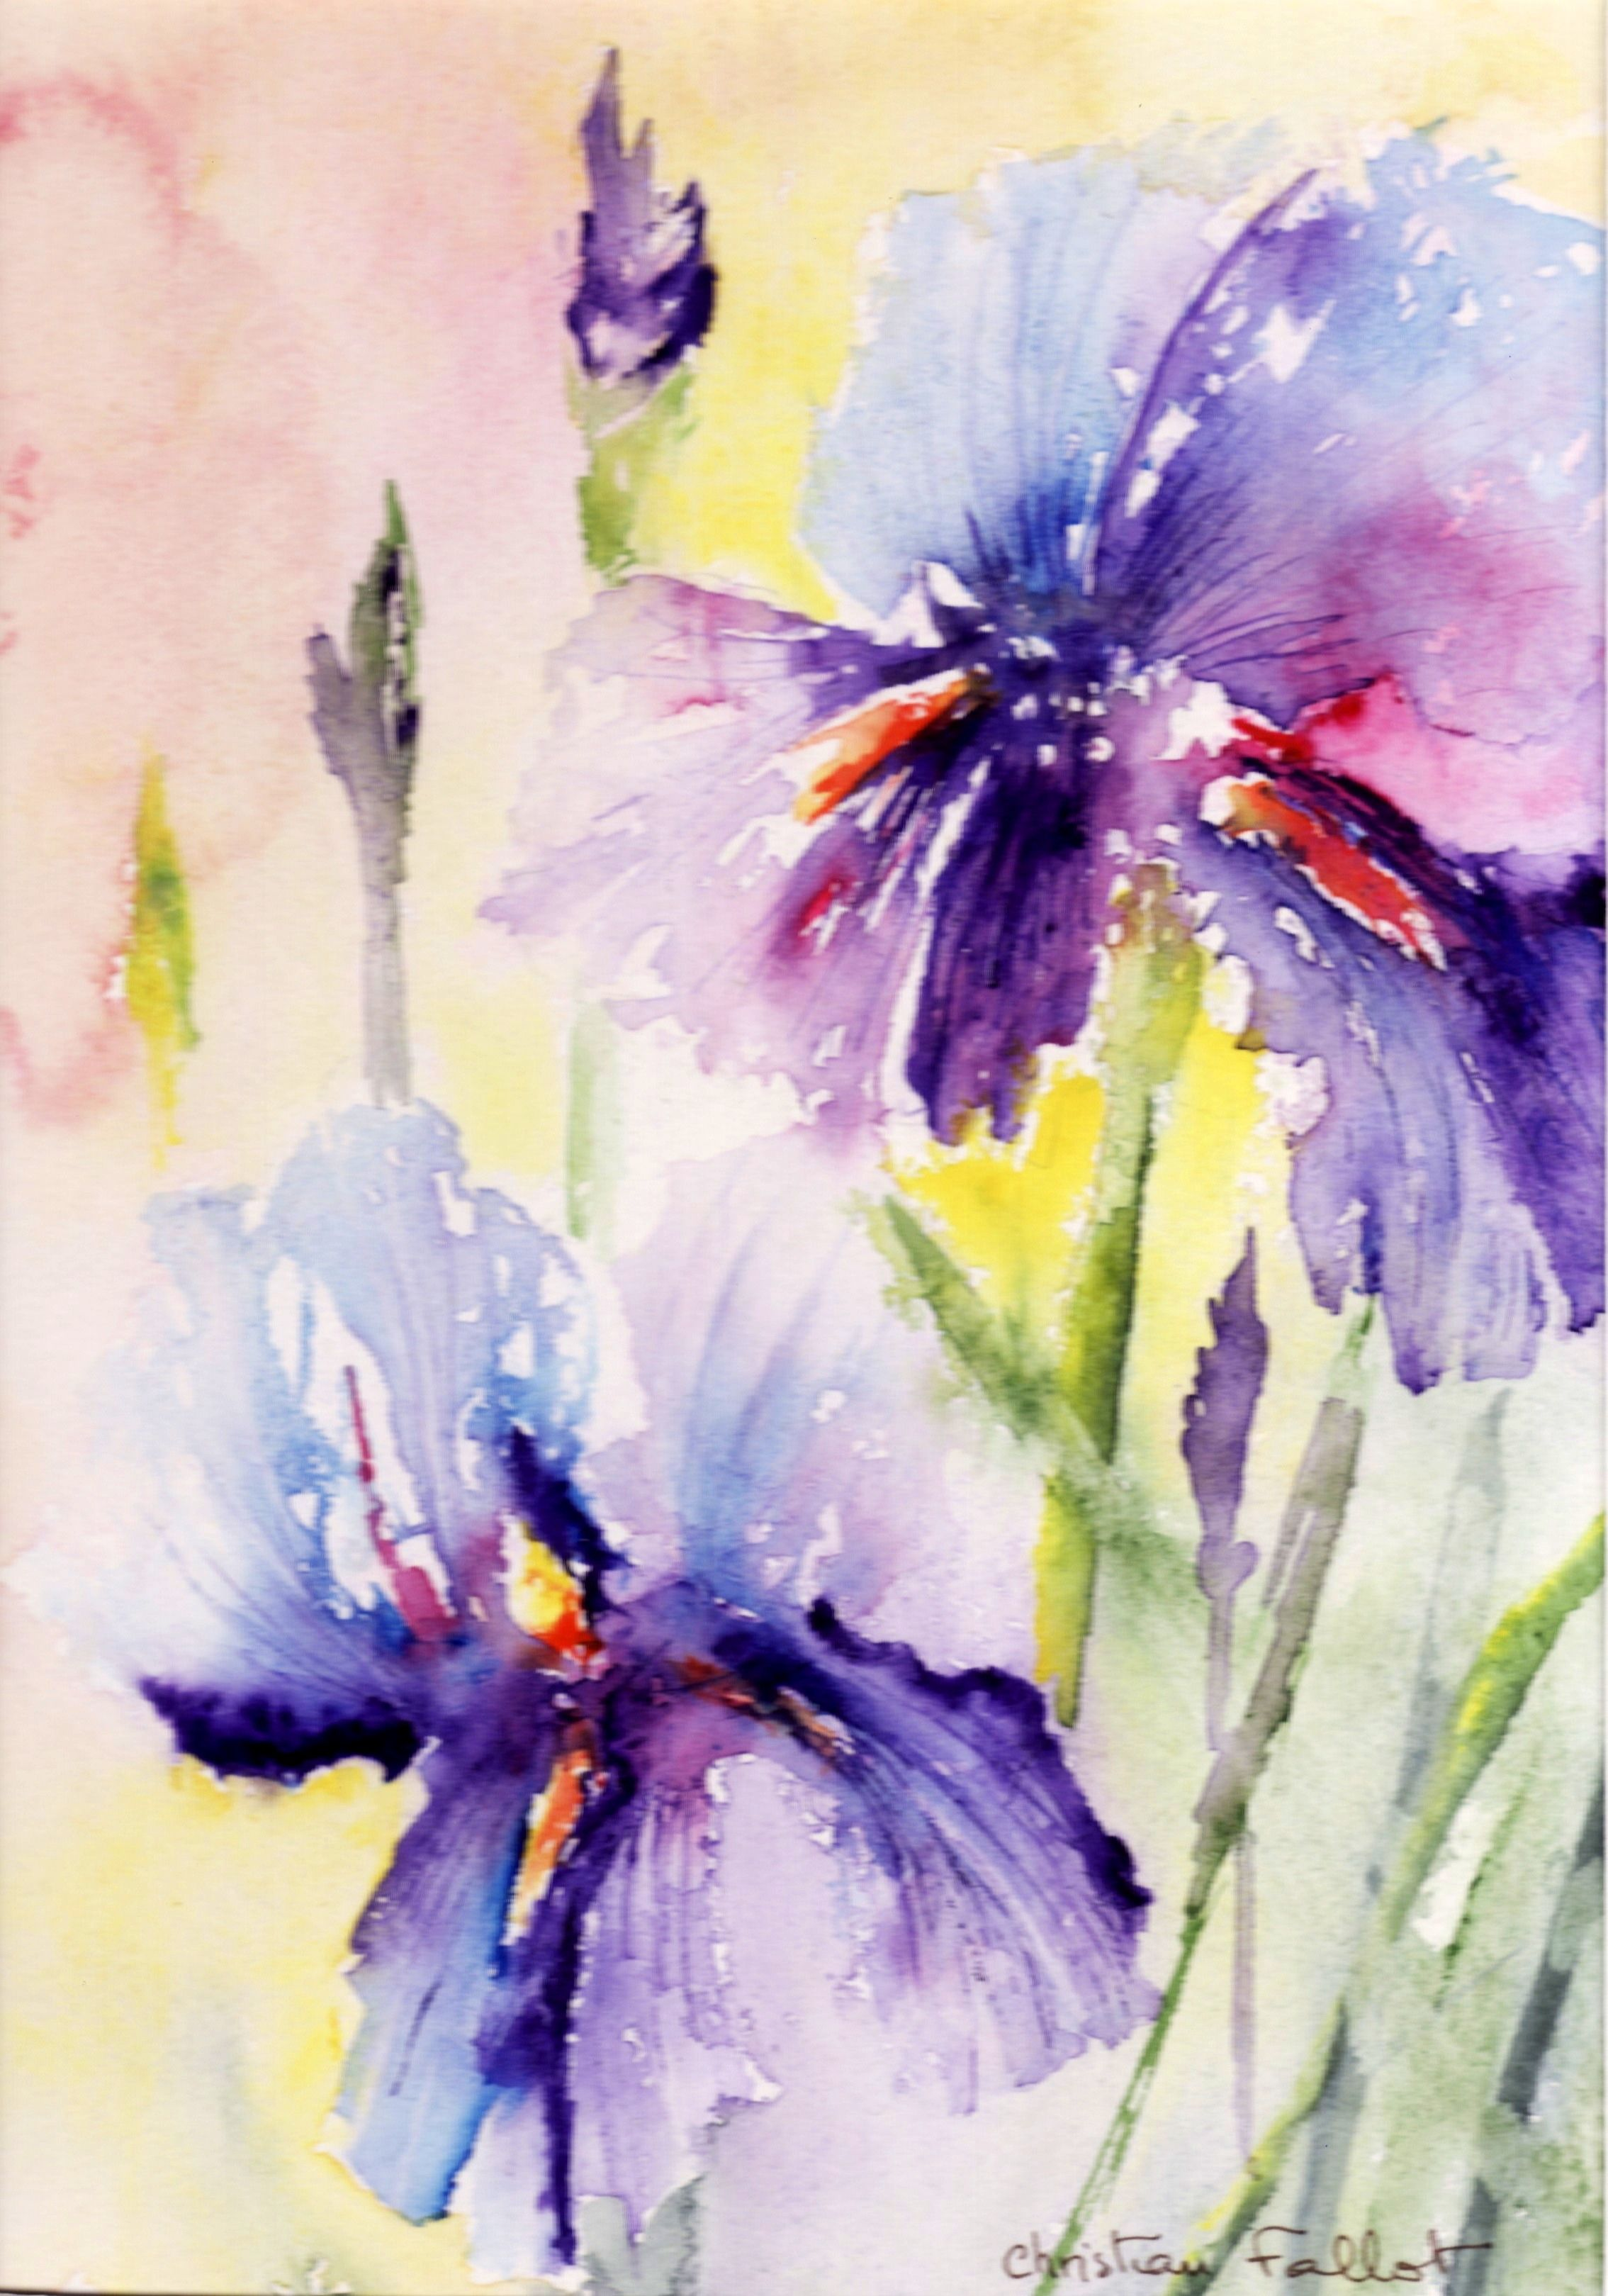 Christian Fallot Aquarelle Iris 1 Flower Painting Watercolor